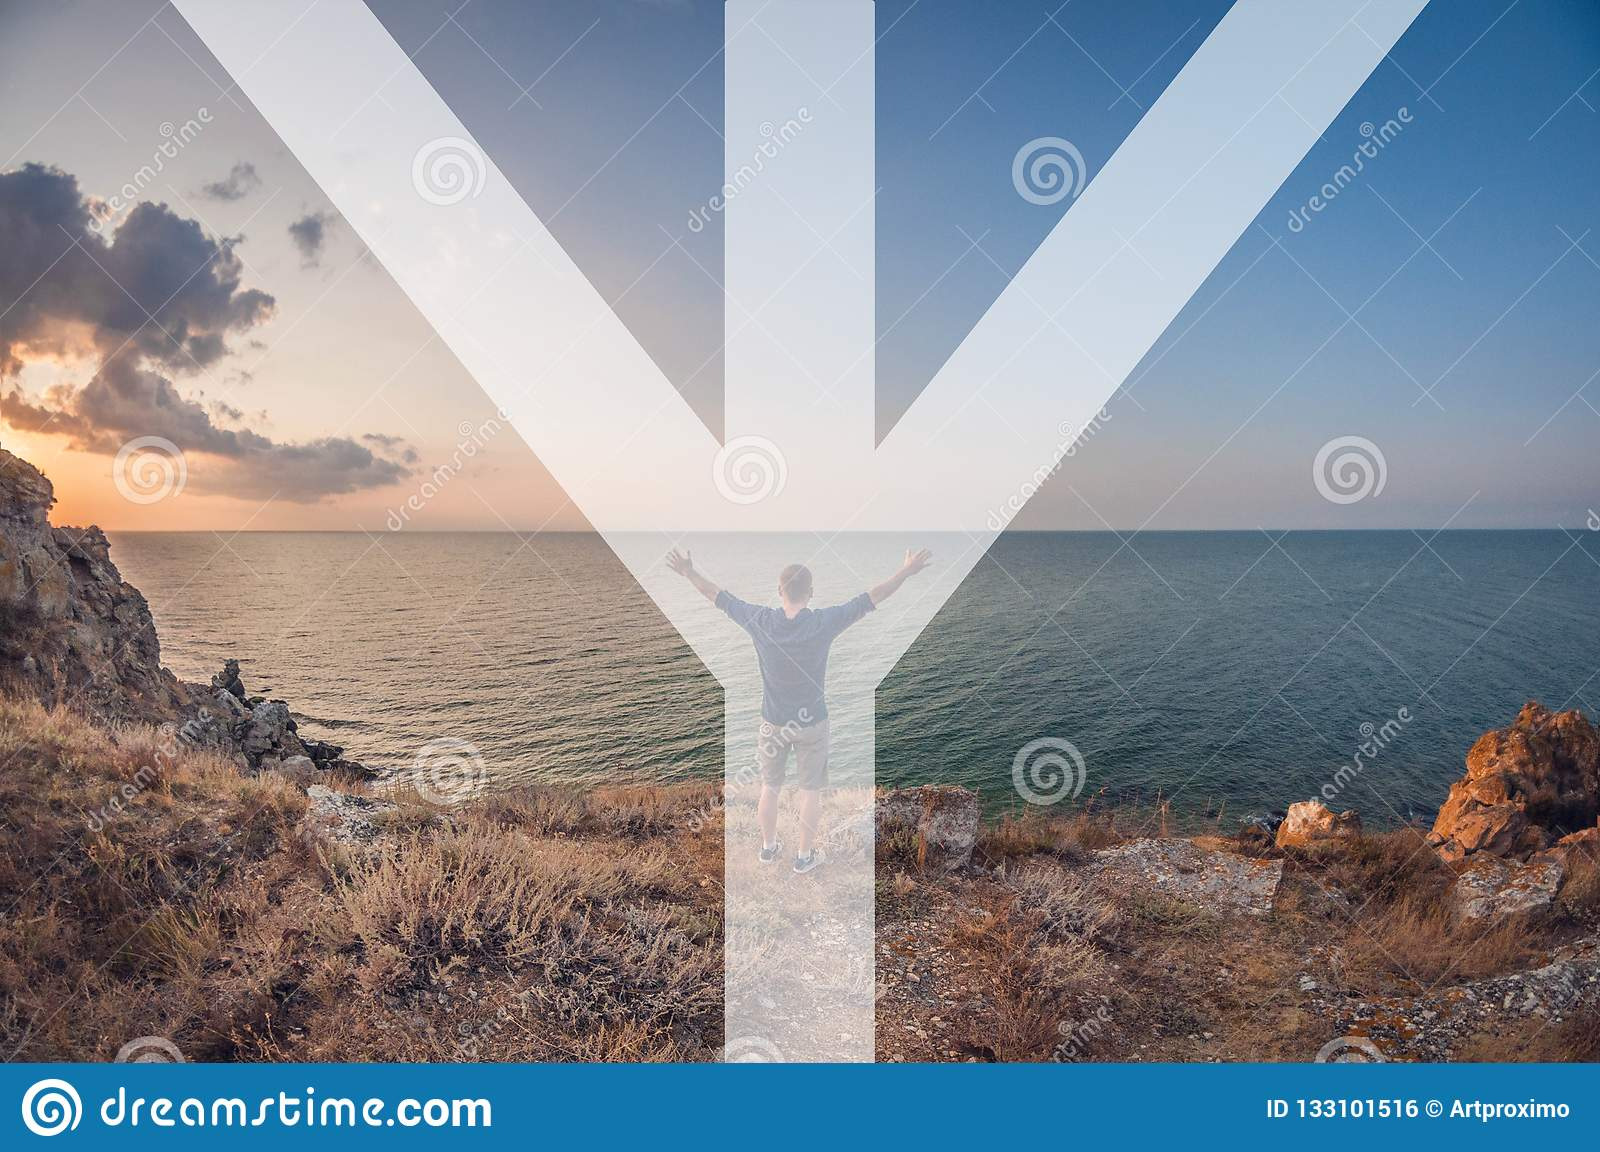 Man in nature, symbolizing the rune algiz man stands on the mountain raising his hands up and greets the rising sun